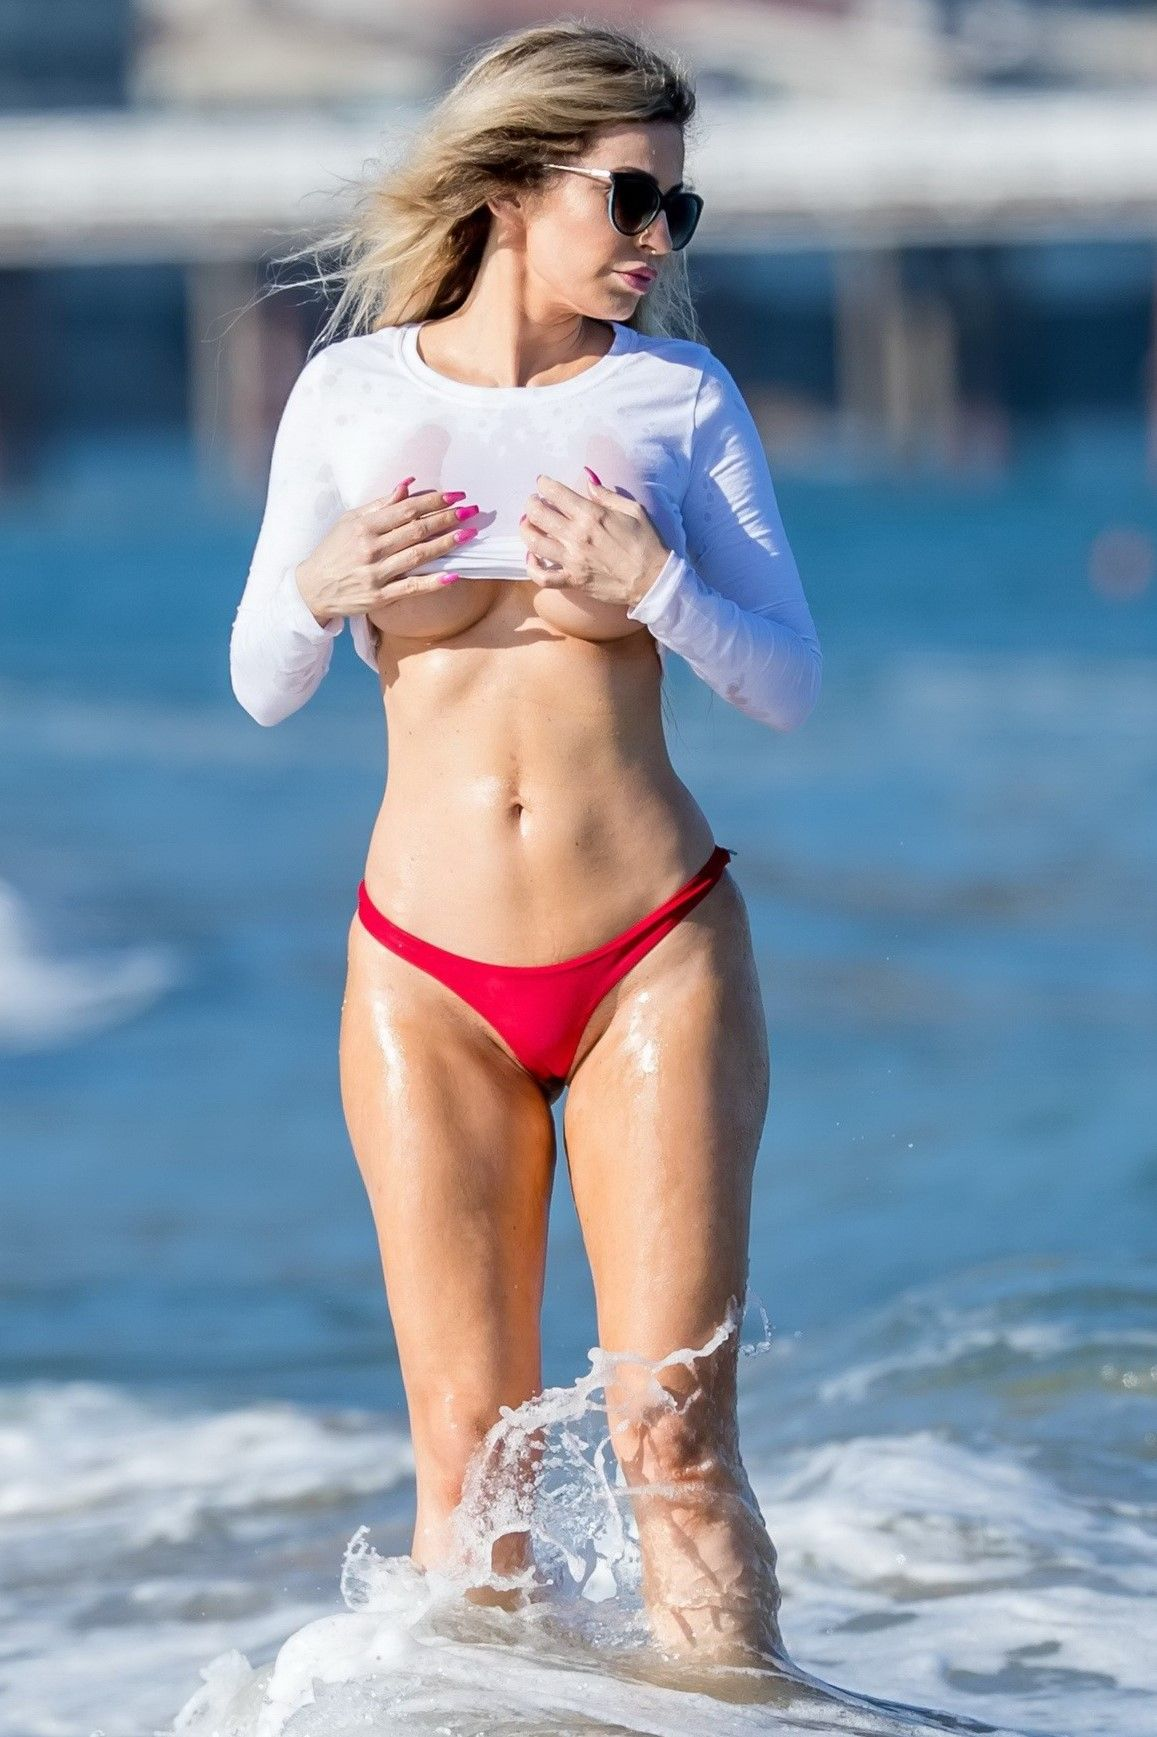 Ana Braga With Images Wet T Shirt Celebrity Outfits Wet T